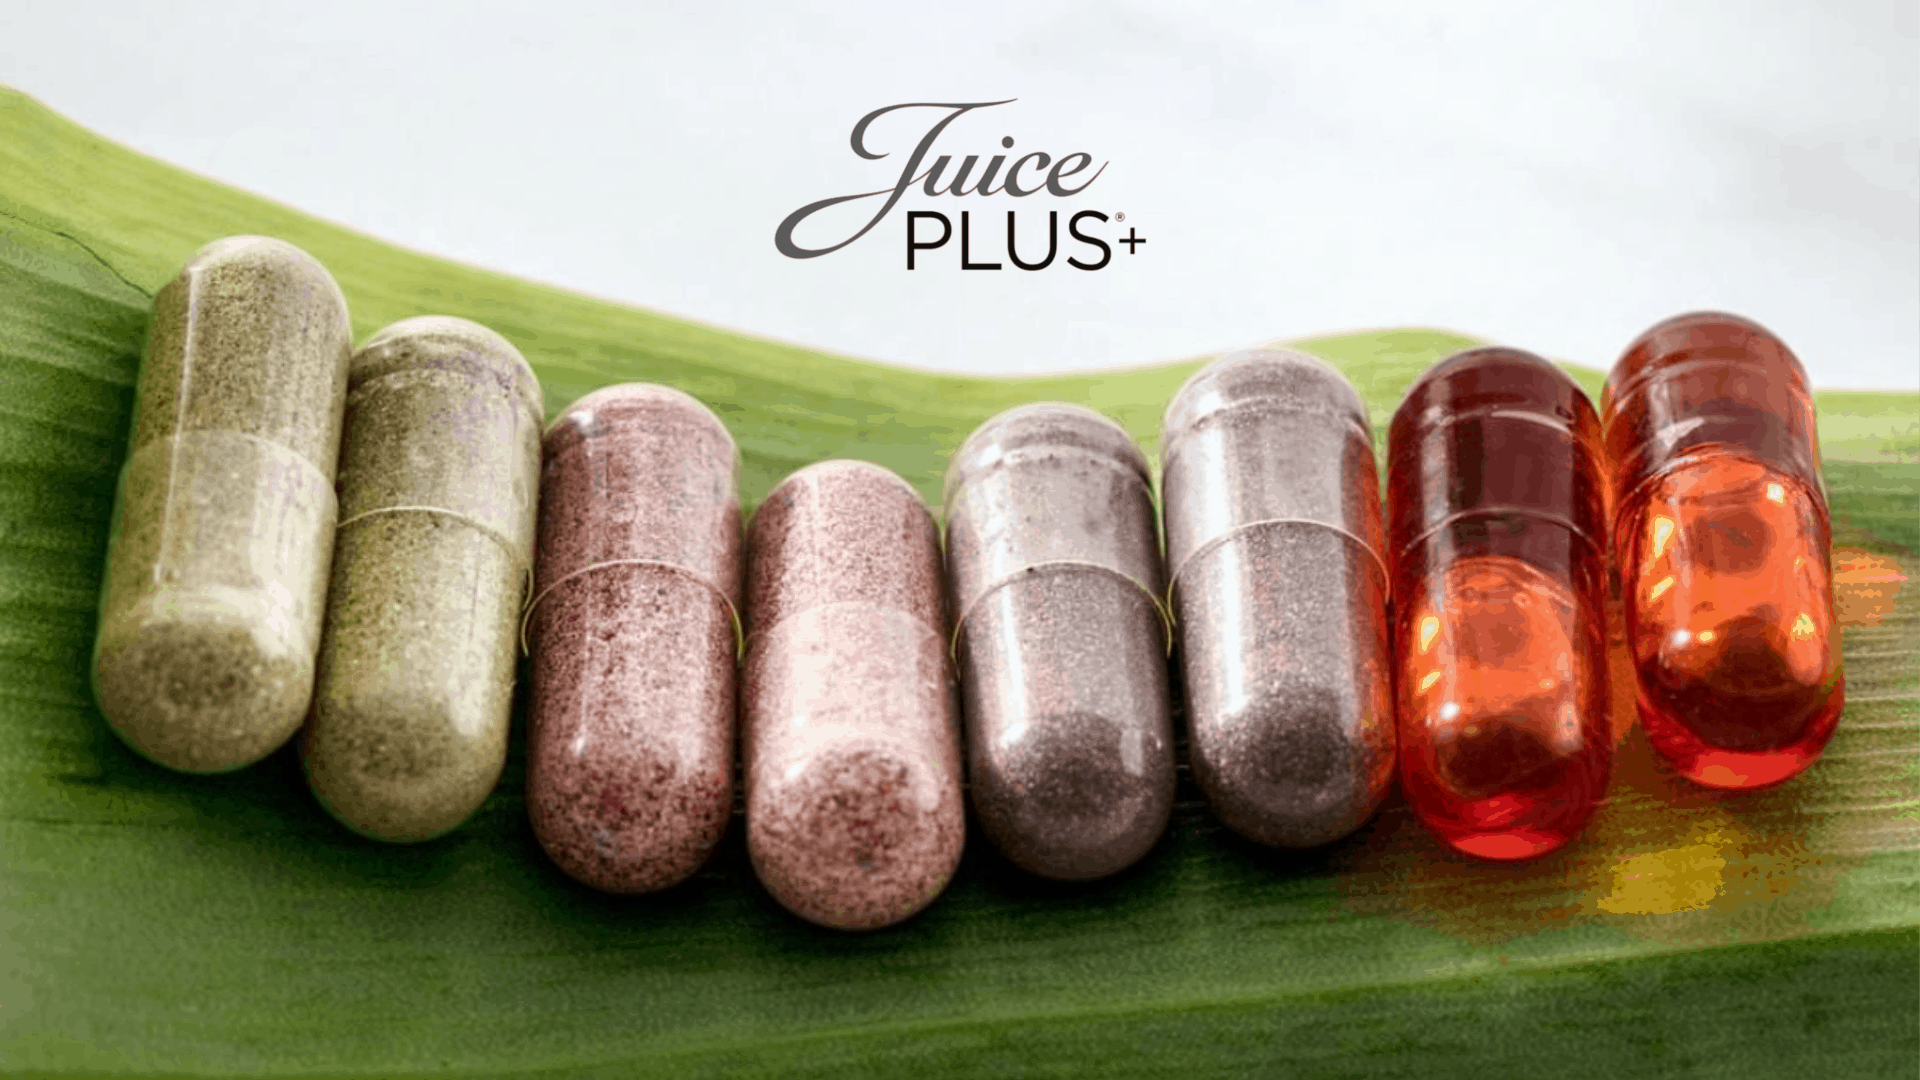 Juice Plus Blends Brochure Cover Image